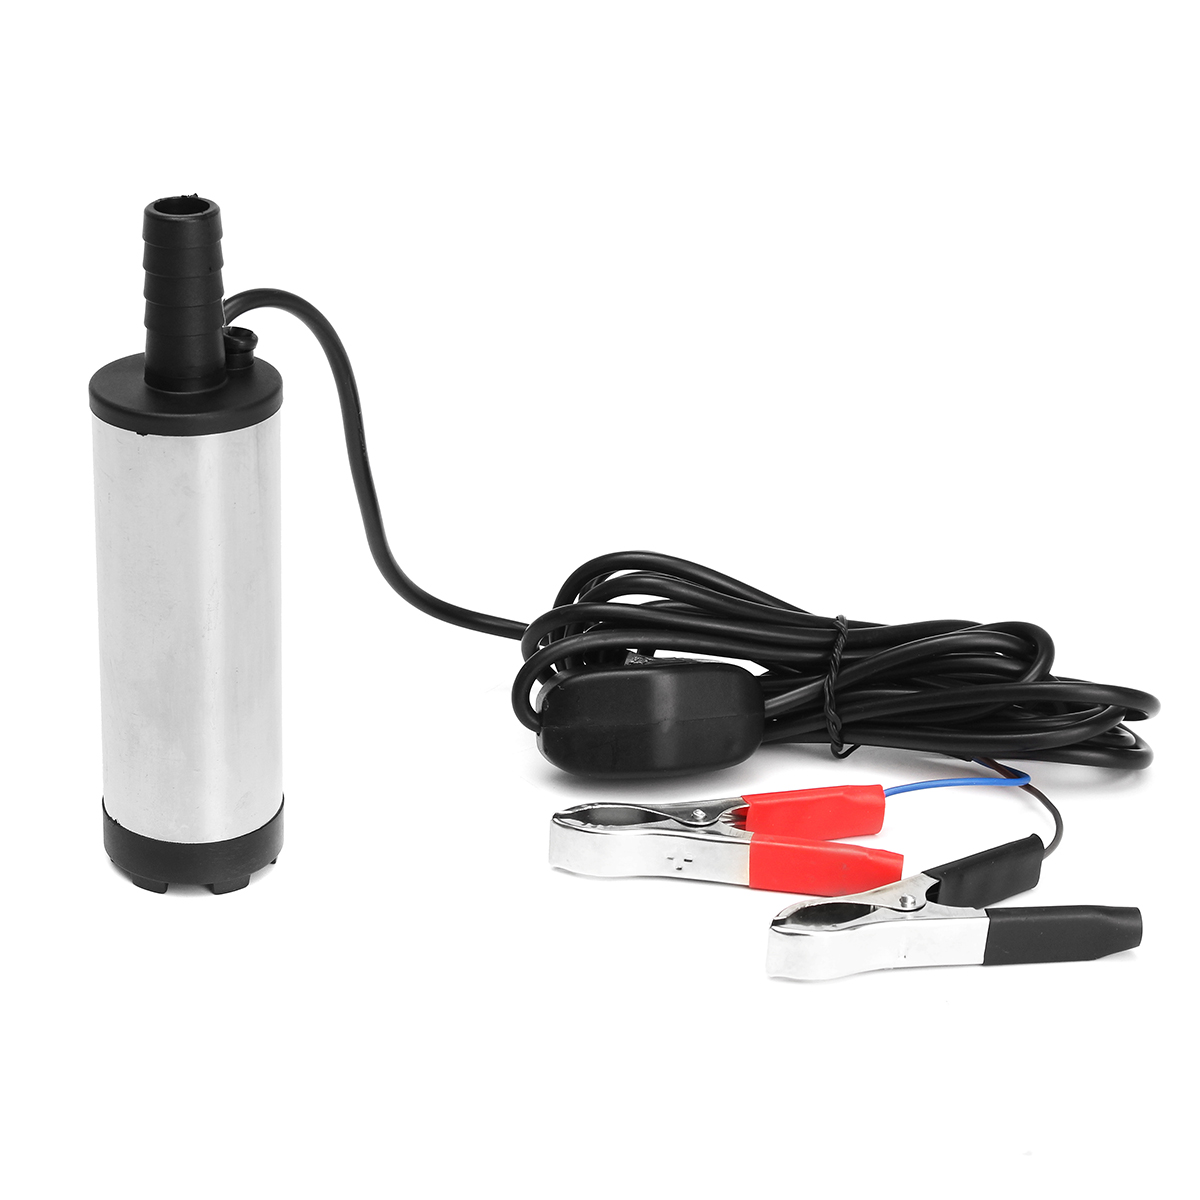 24V 38mm 8700r / min Stainless Steel Silver Electric Submersible Pump Water Diesel